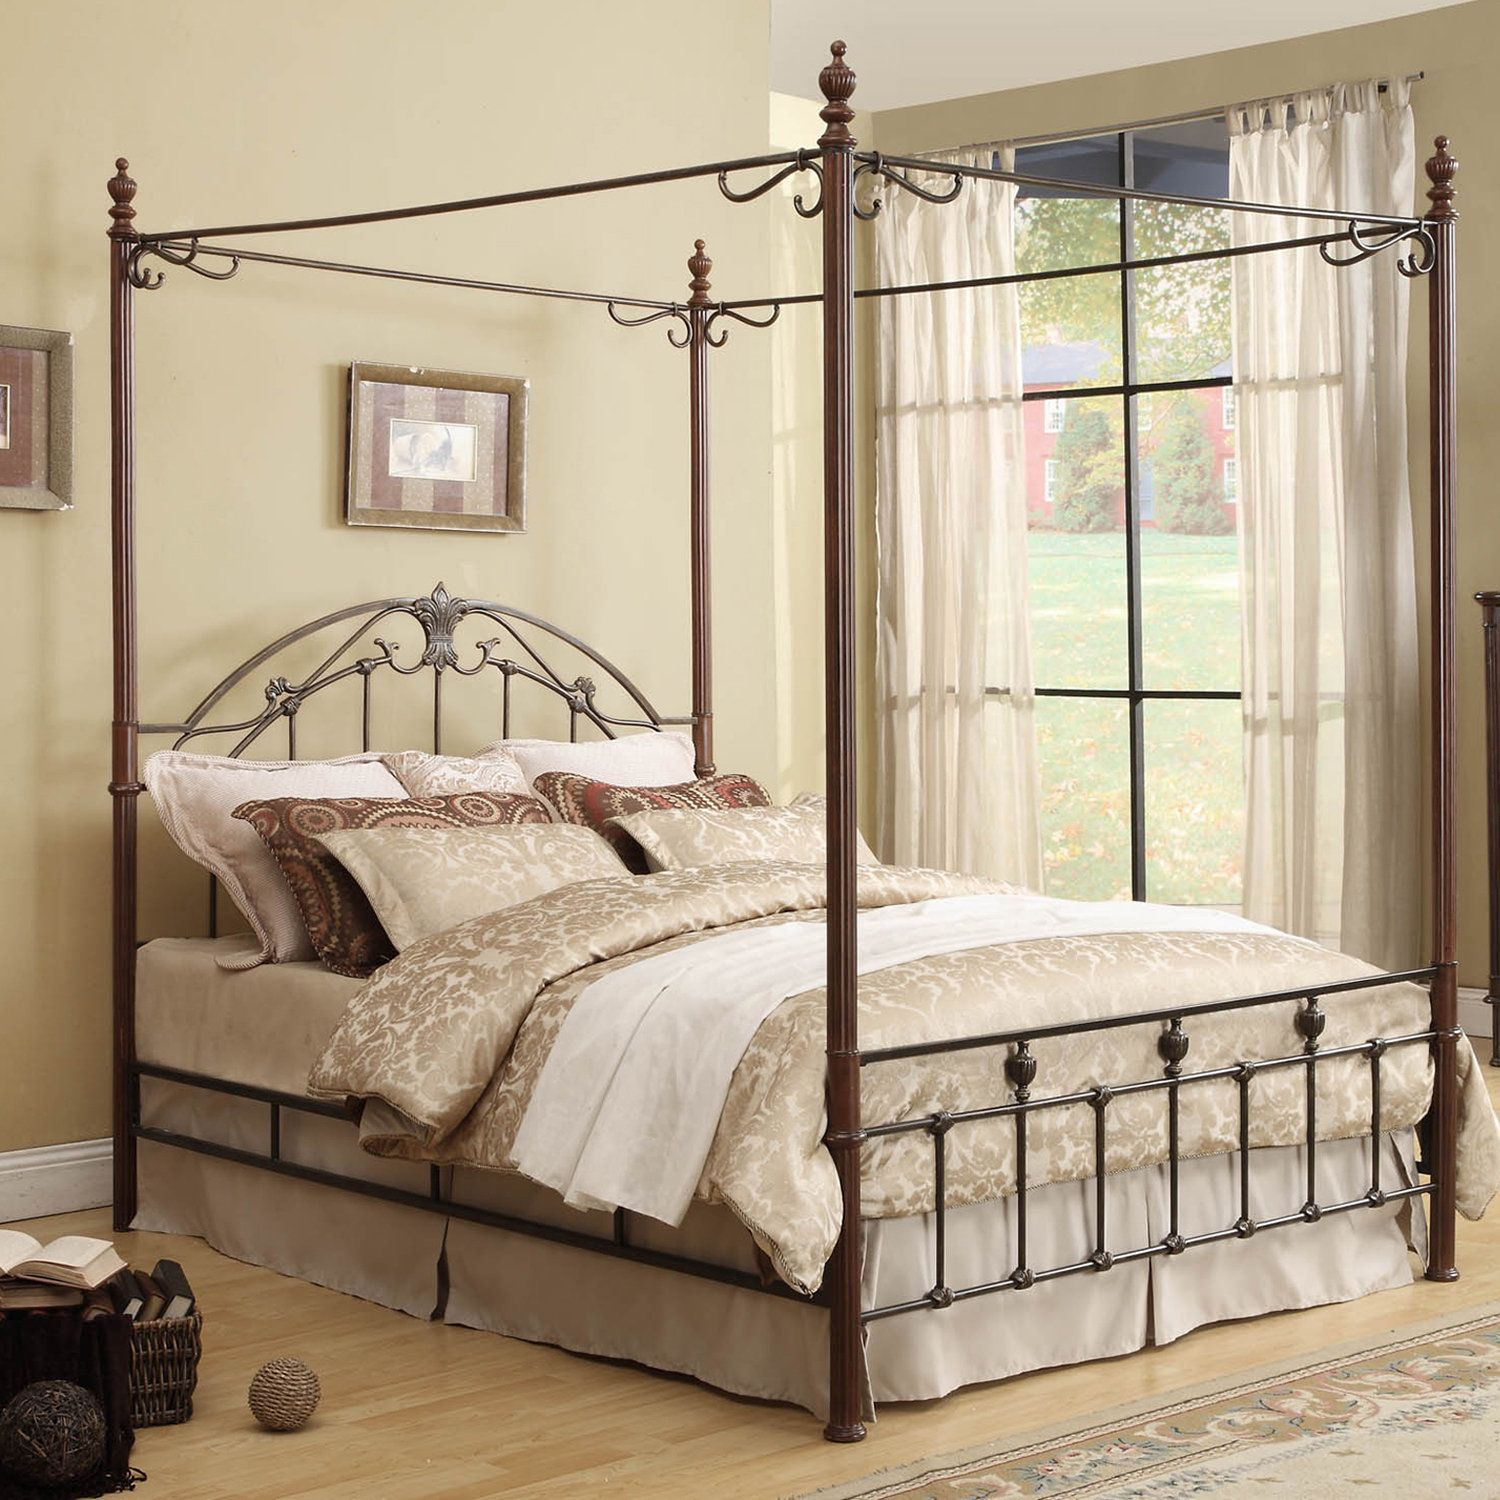 34de9224e531d3 Newcastle Graceful Scroll Bronze Iron King Canopy Poster Bed by Tribecca  Home (Newcastle King Cast-Iron Metal Canopy Bed), Brown